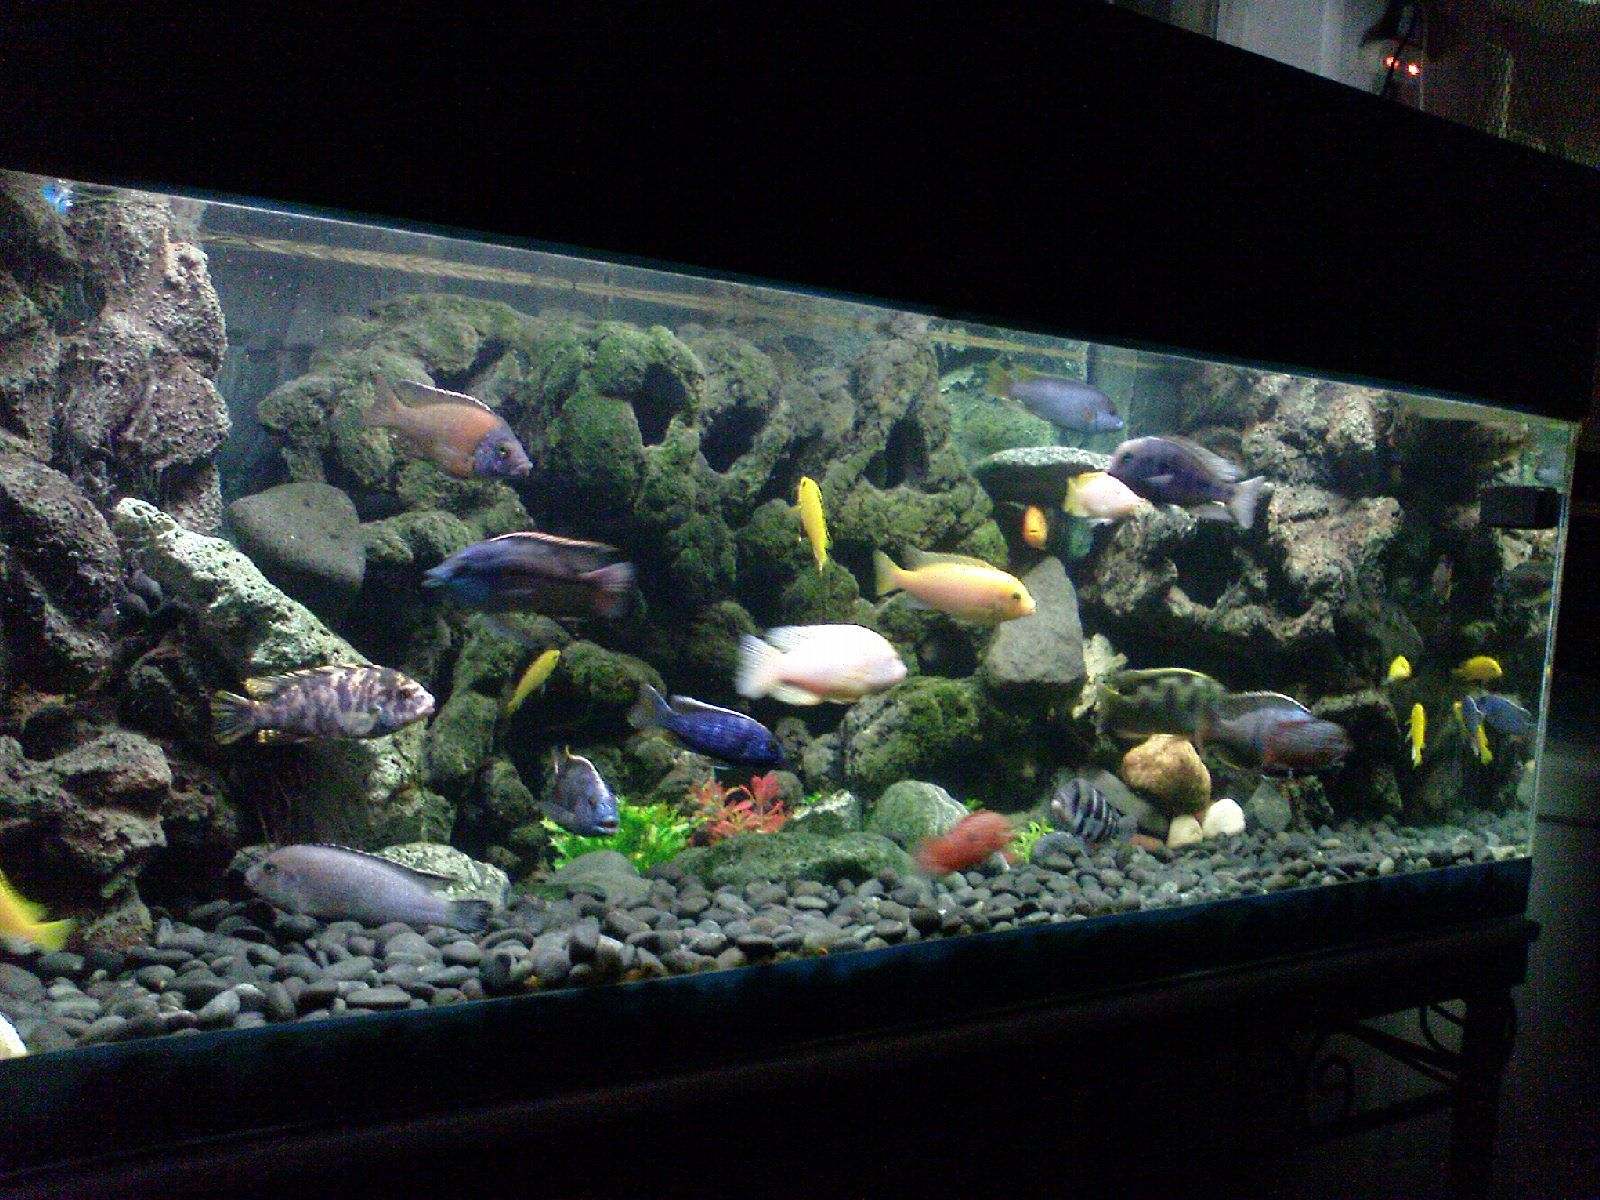 Aquarium fish tank diy - Turn Tiles Into A 3d Fish Tank Background Diy Techblogger Aquarium